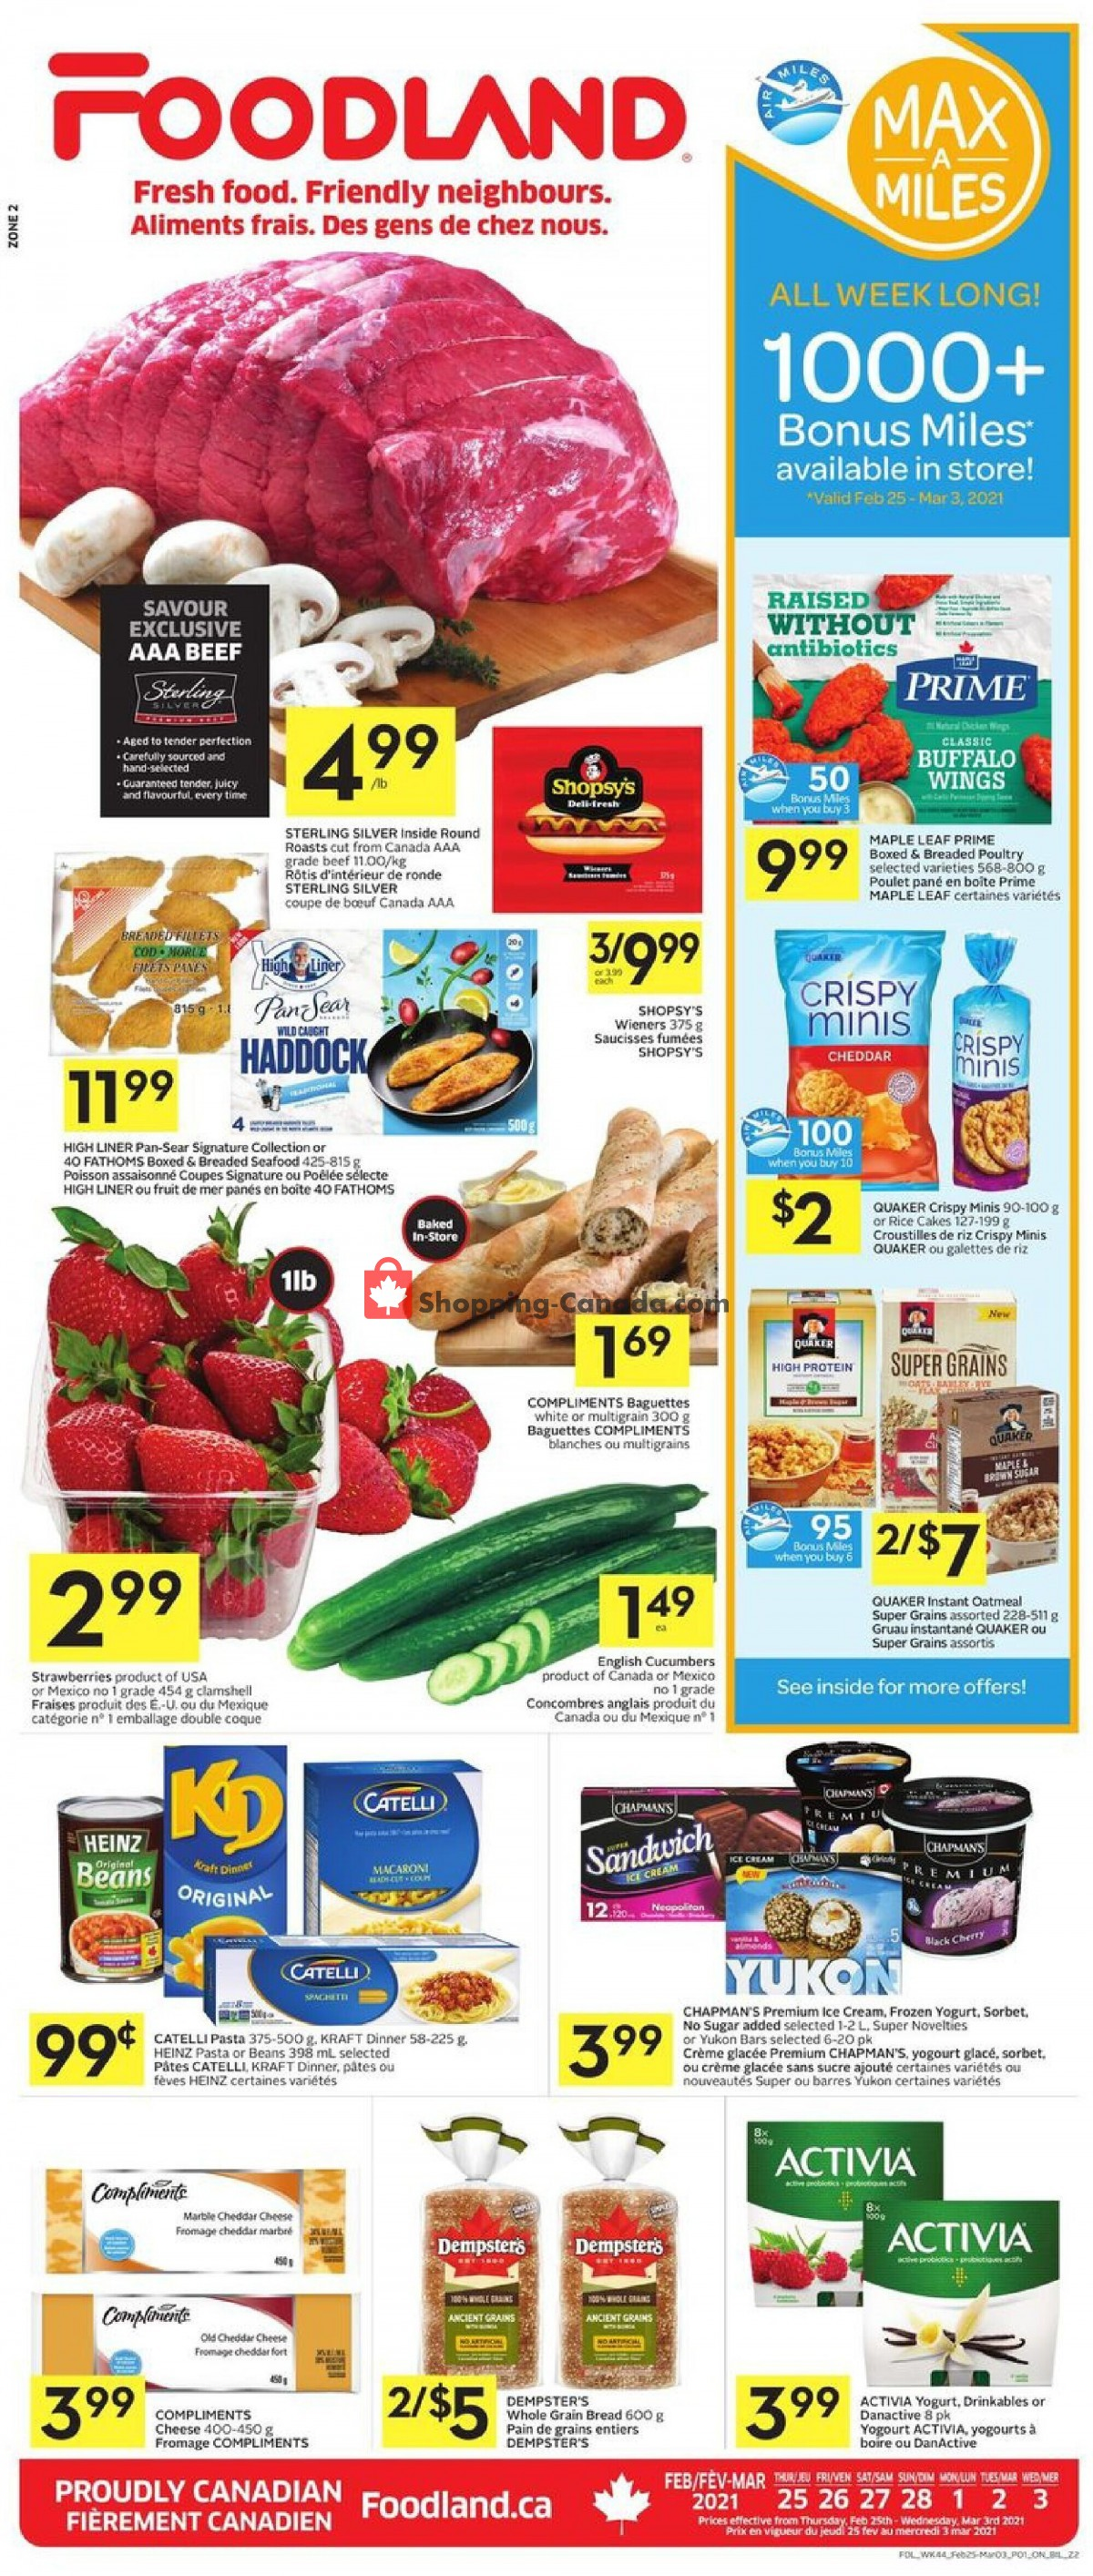 Flyer Foodland Canada - from Thursday February 25, 2021 to Wednesday March 3, 2021